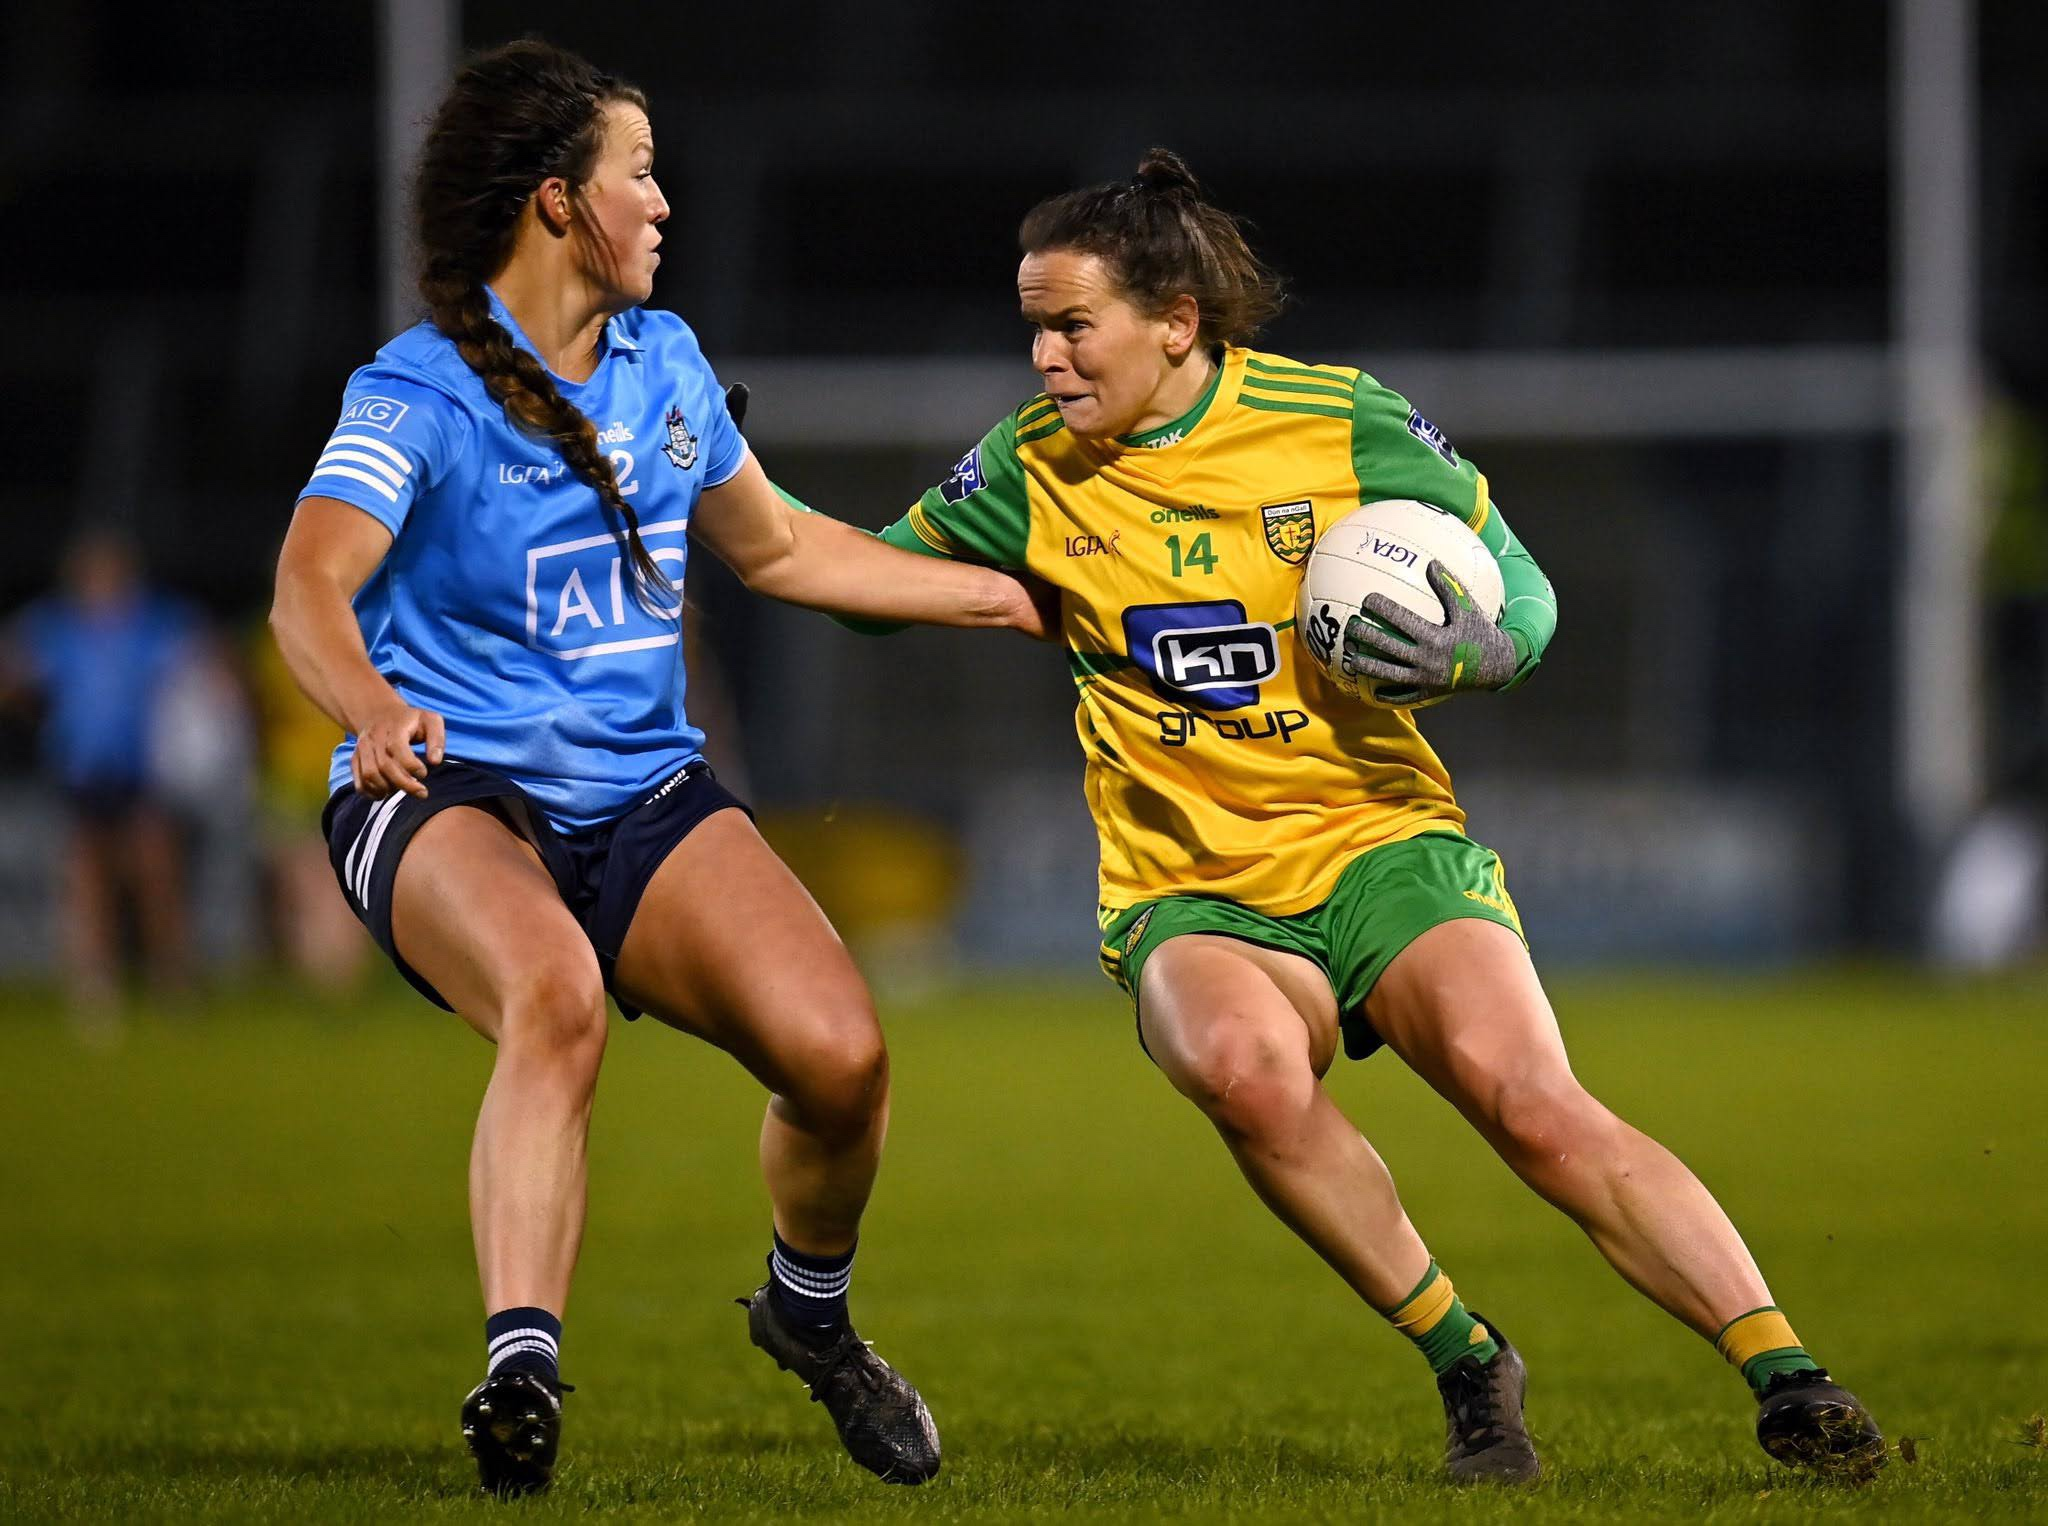 A Dublin and Donegal Ladies footballer in action during last years Championship, both teams meet again in the TG4 All Ireland quarter final this Monday.